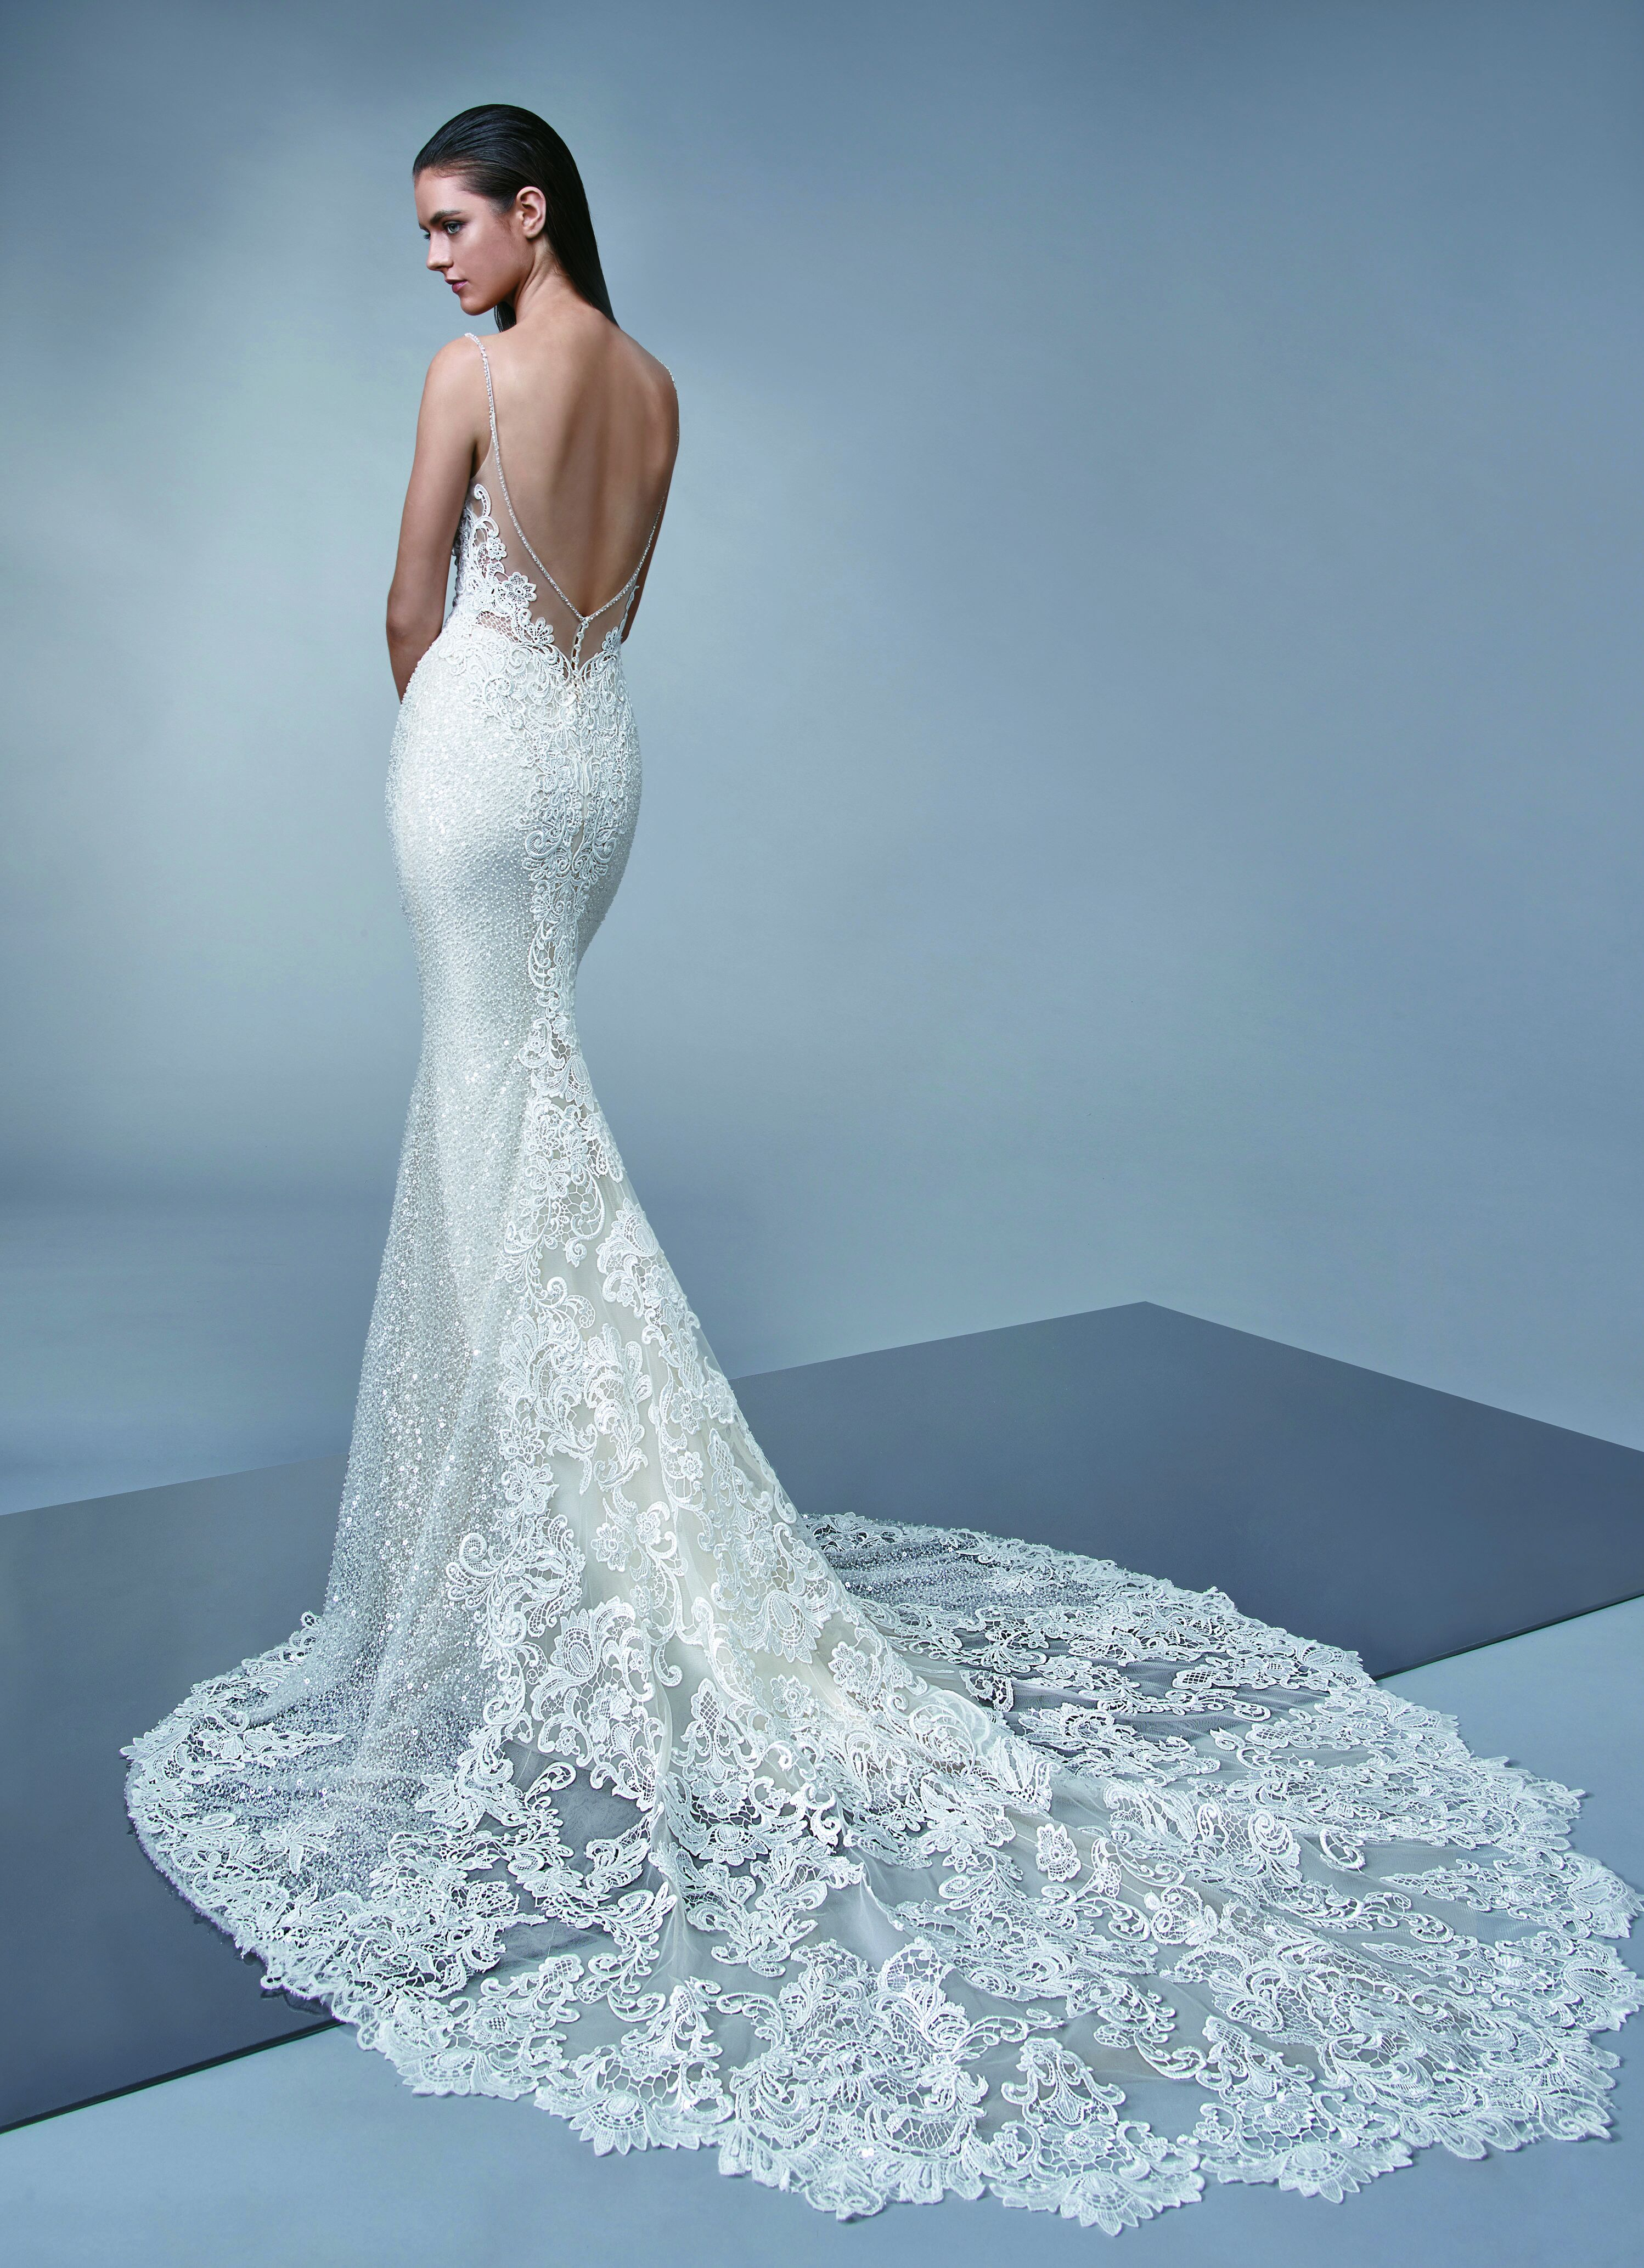 Bridal Couture of Plymouth - Plymouth, MI